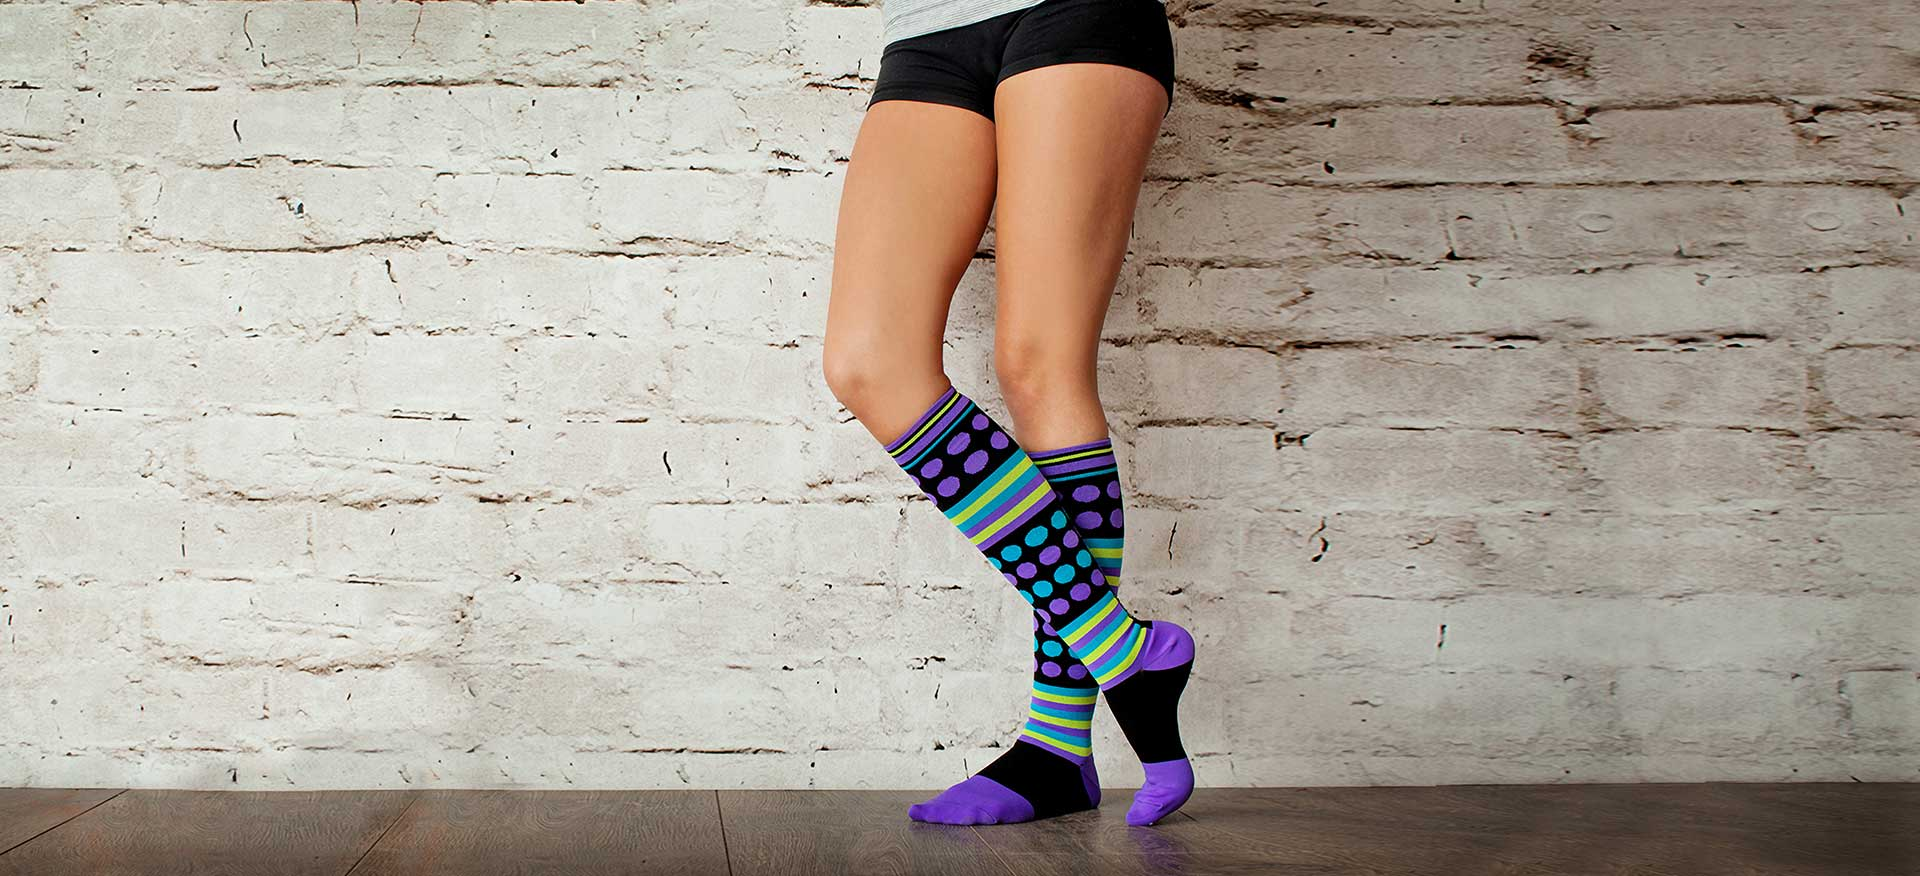 BUY 2, GET 1 FREE* ON ALL COMPRESSION SOCKS